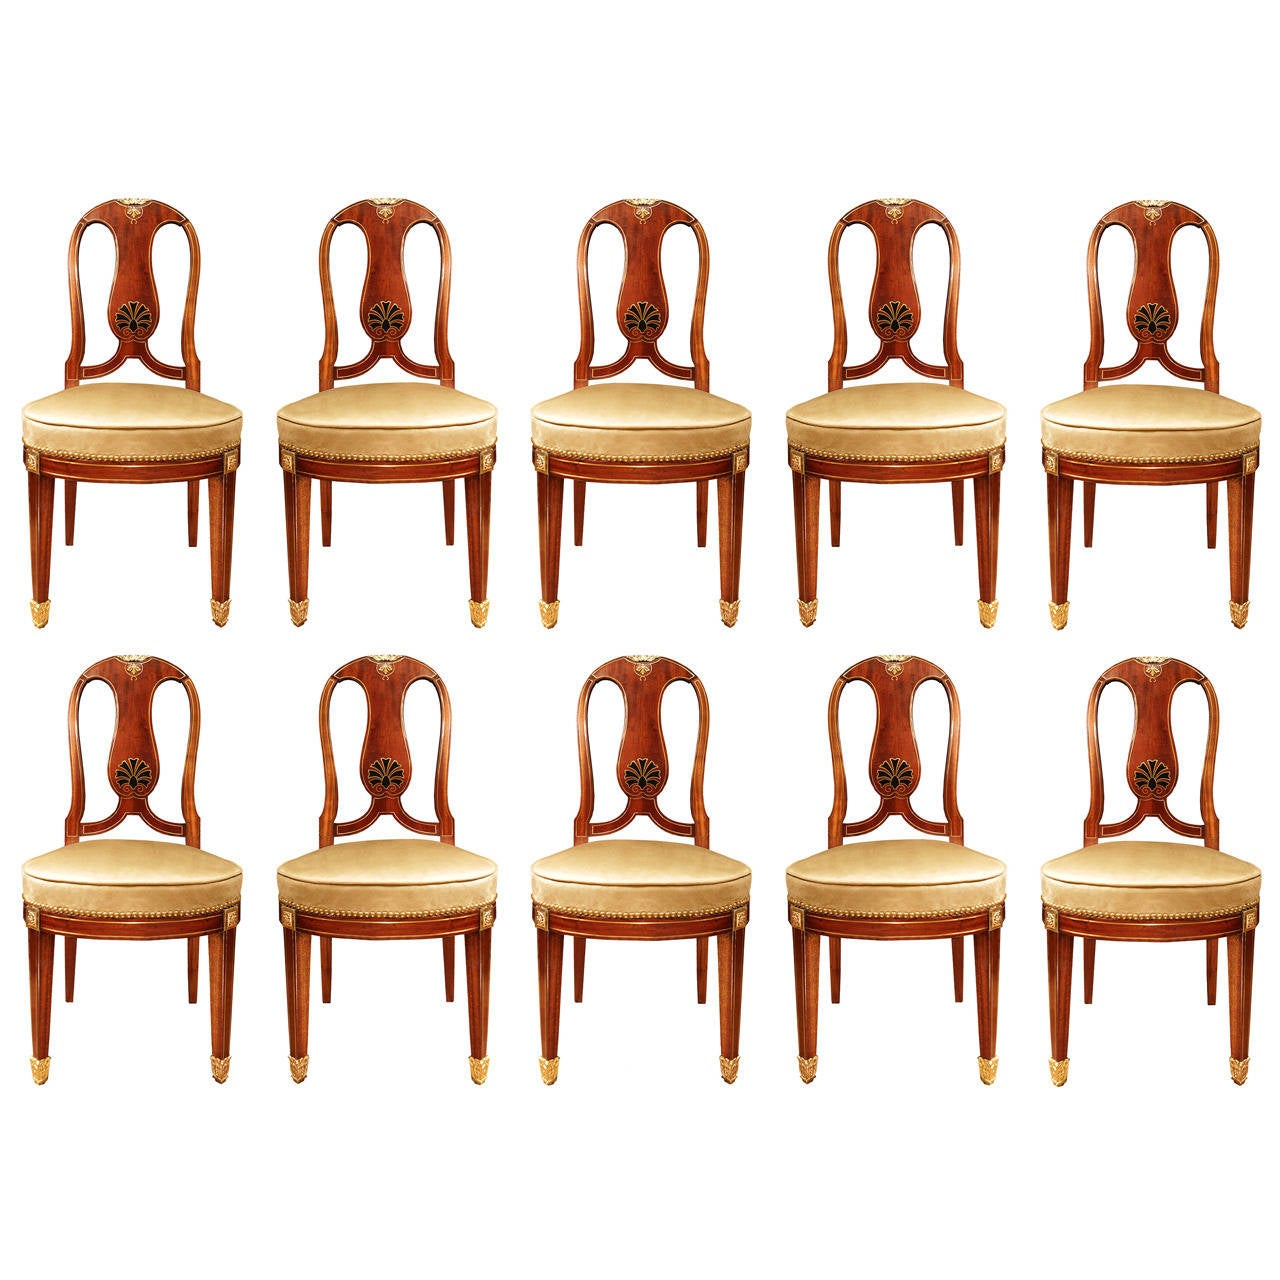 Set of Ten French 19th Century Louis XVI Style Mahogany Dining Chairs